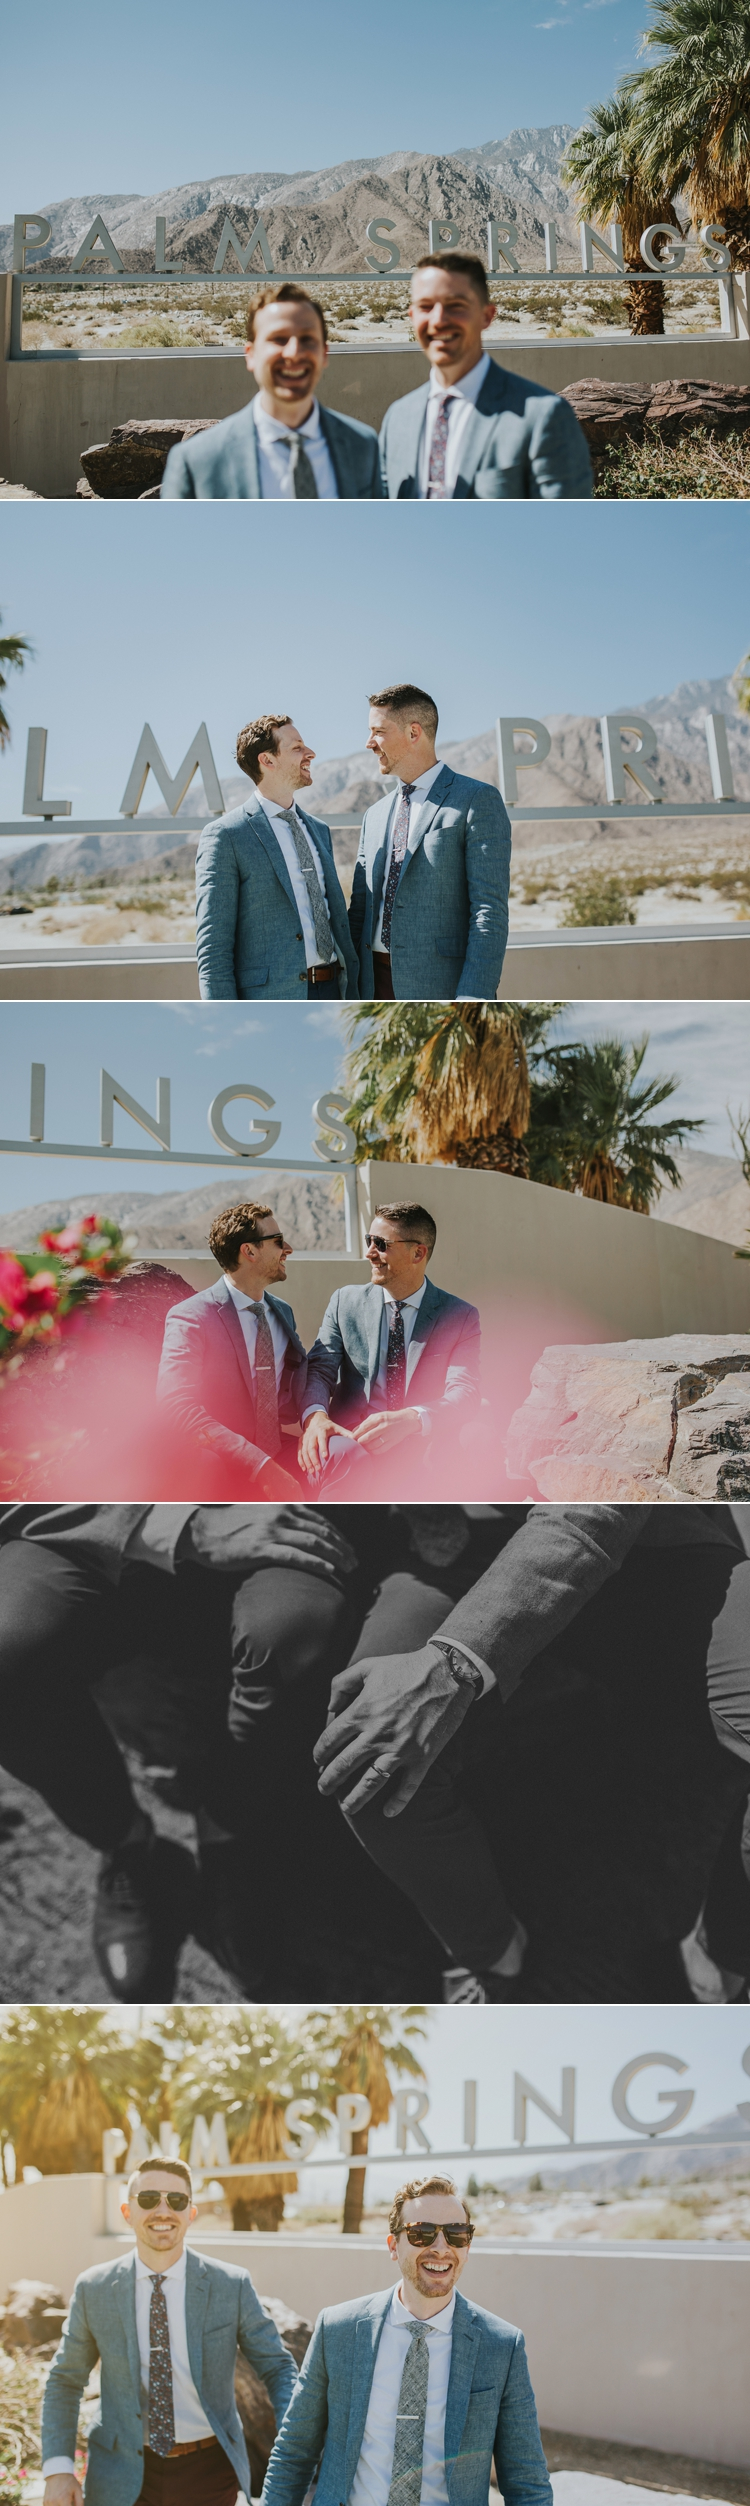 court-house-wedding-palm-springs-6